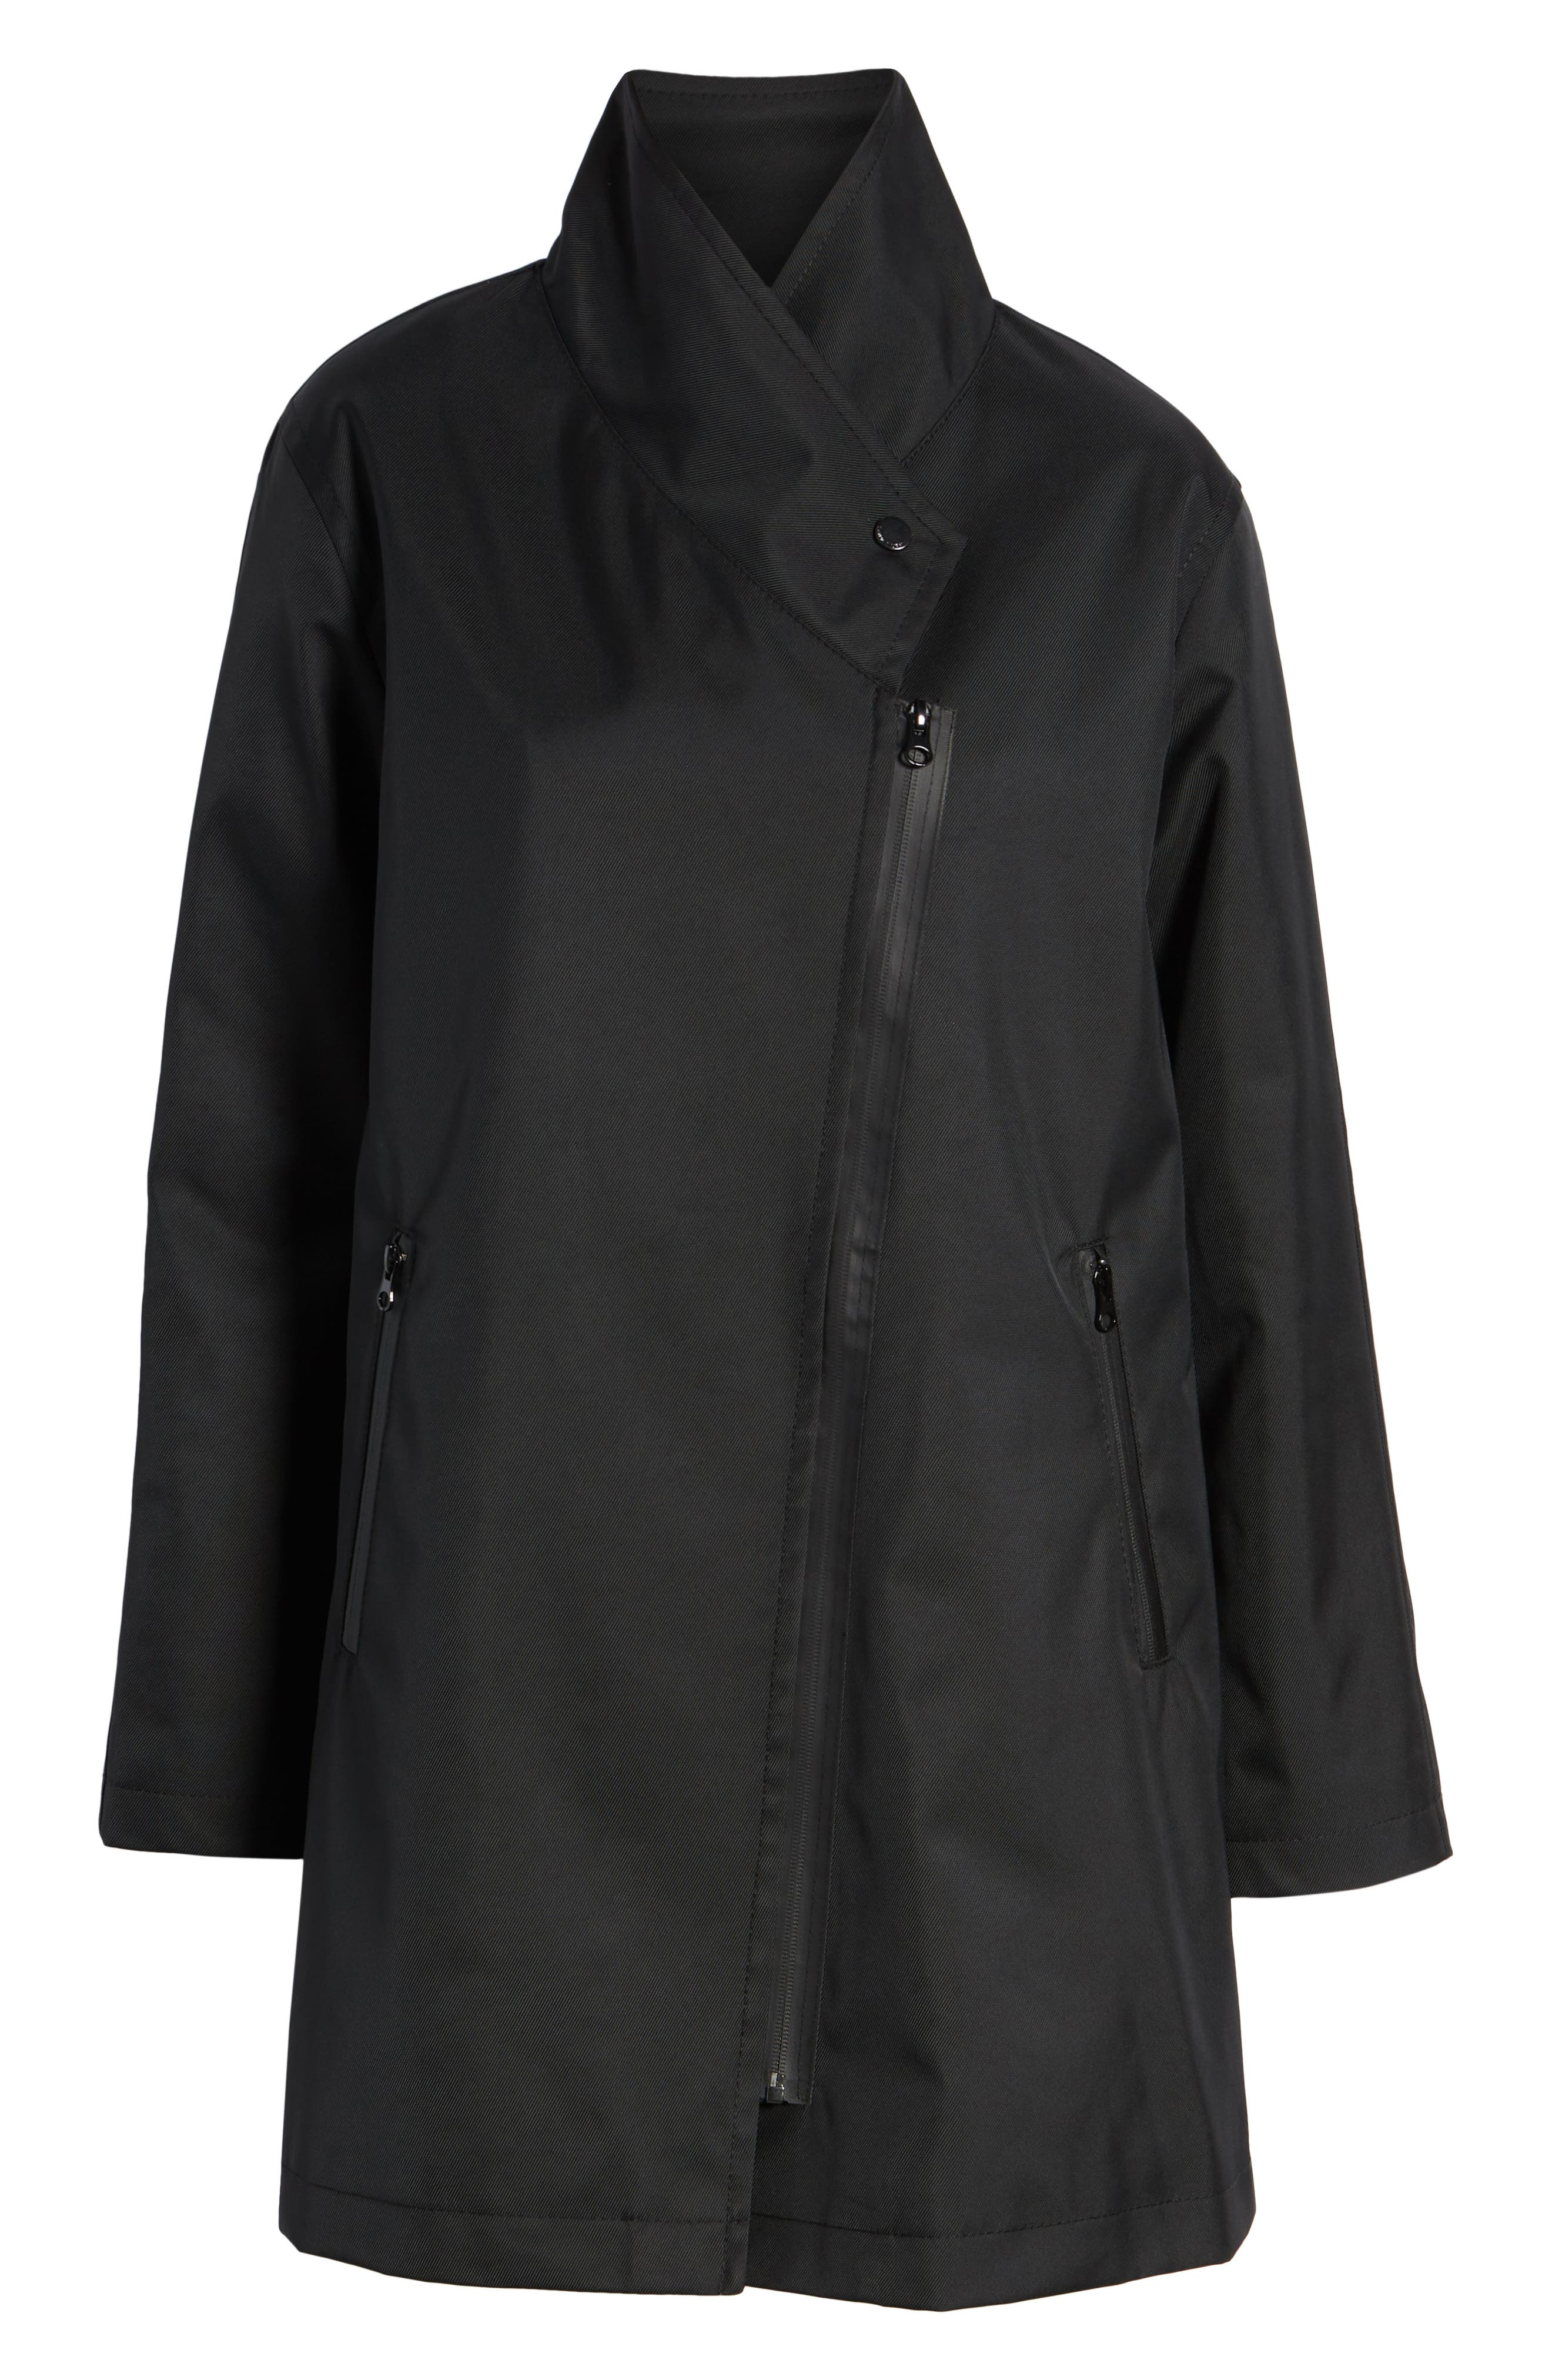 Tenley Asymmetrical Collar Coat,                             Alternate thumbnail 6, color,                             BLACK